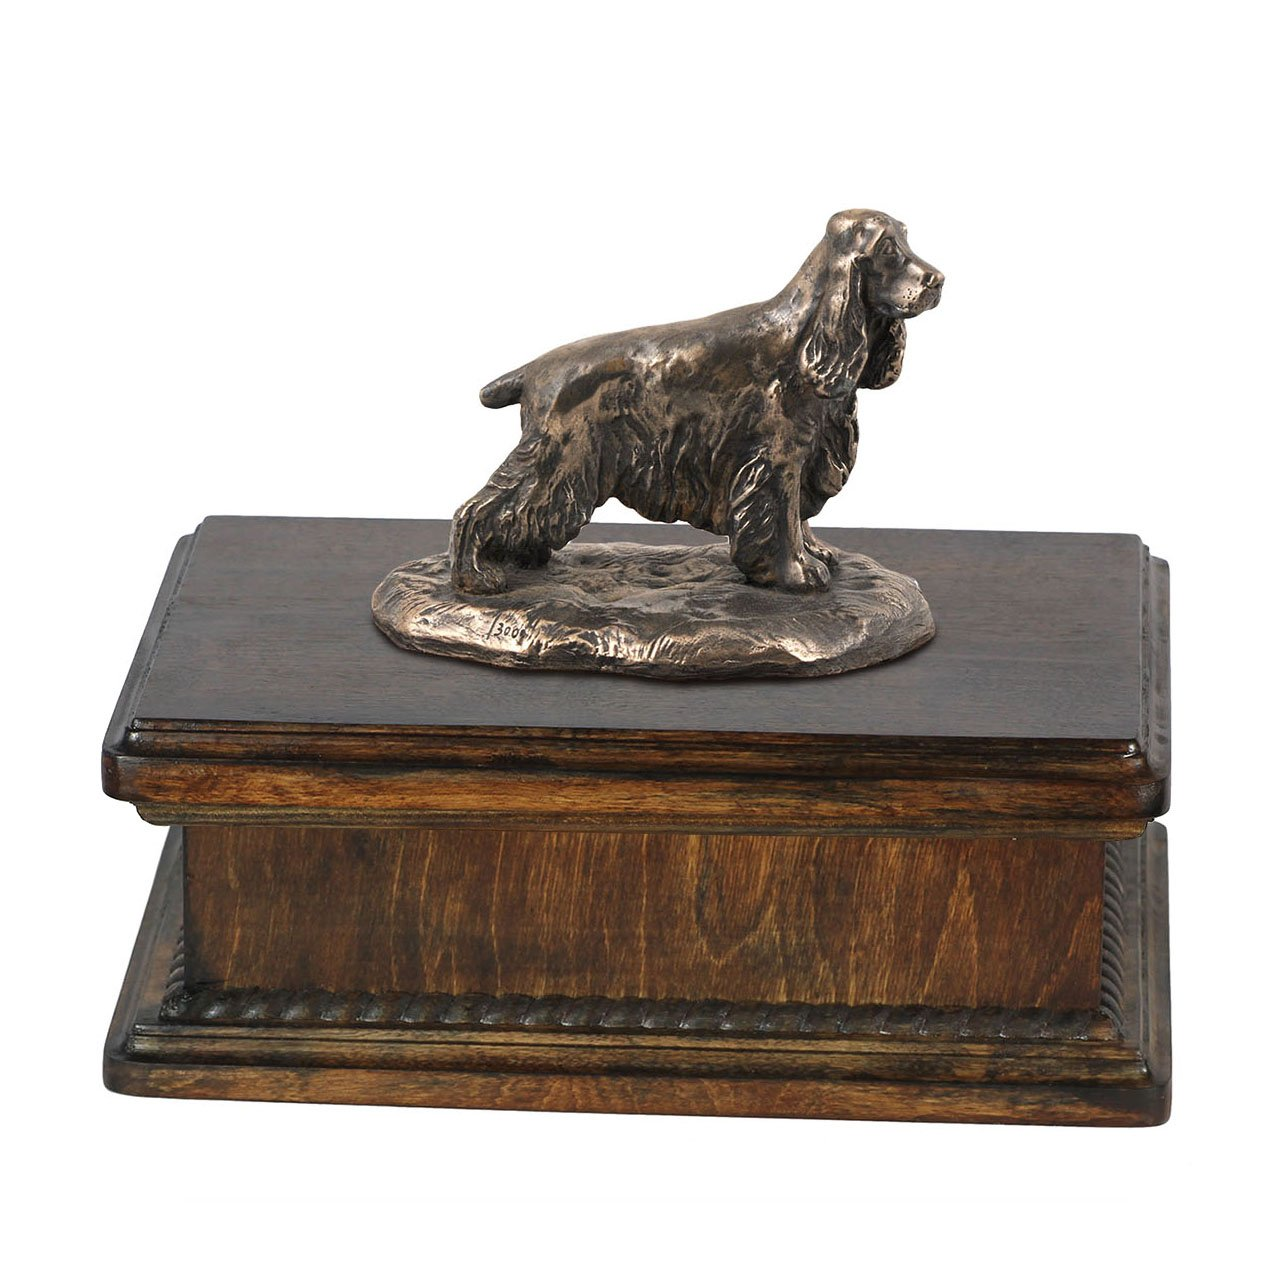 English Cocker Spaniel, memorial, urn for dog's ashes, with dog statue, exclusive, ArtDog